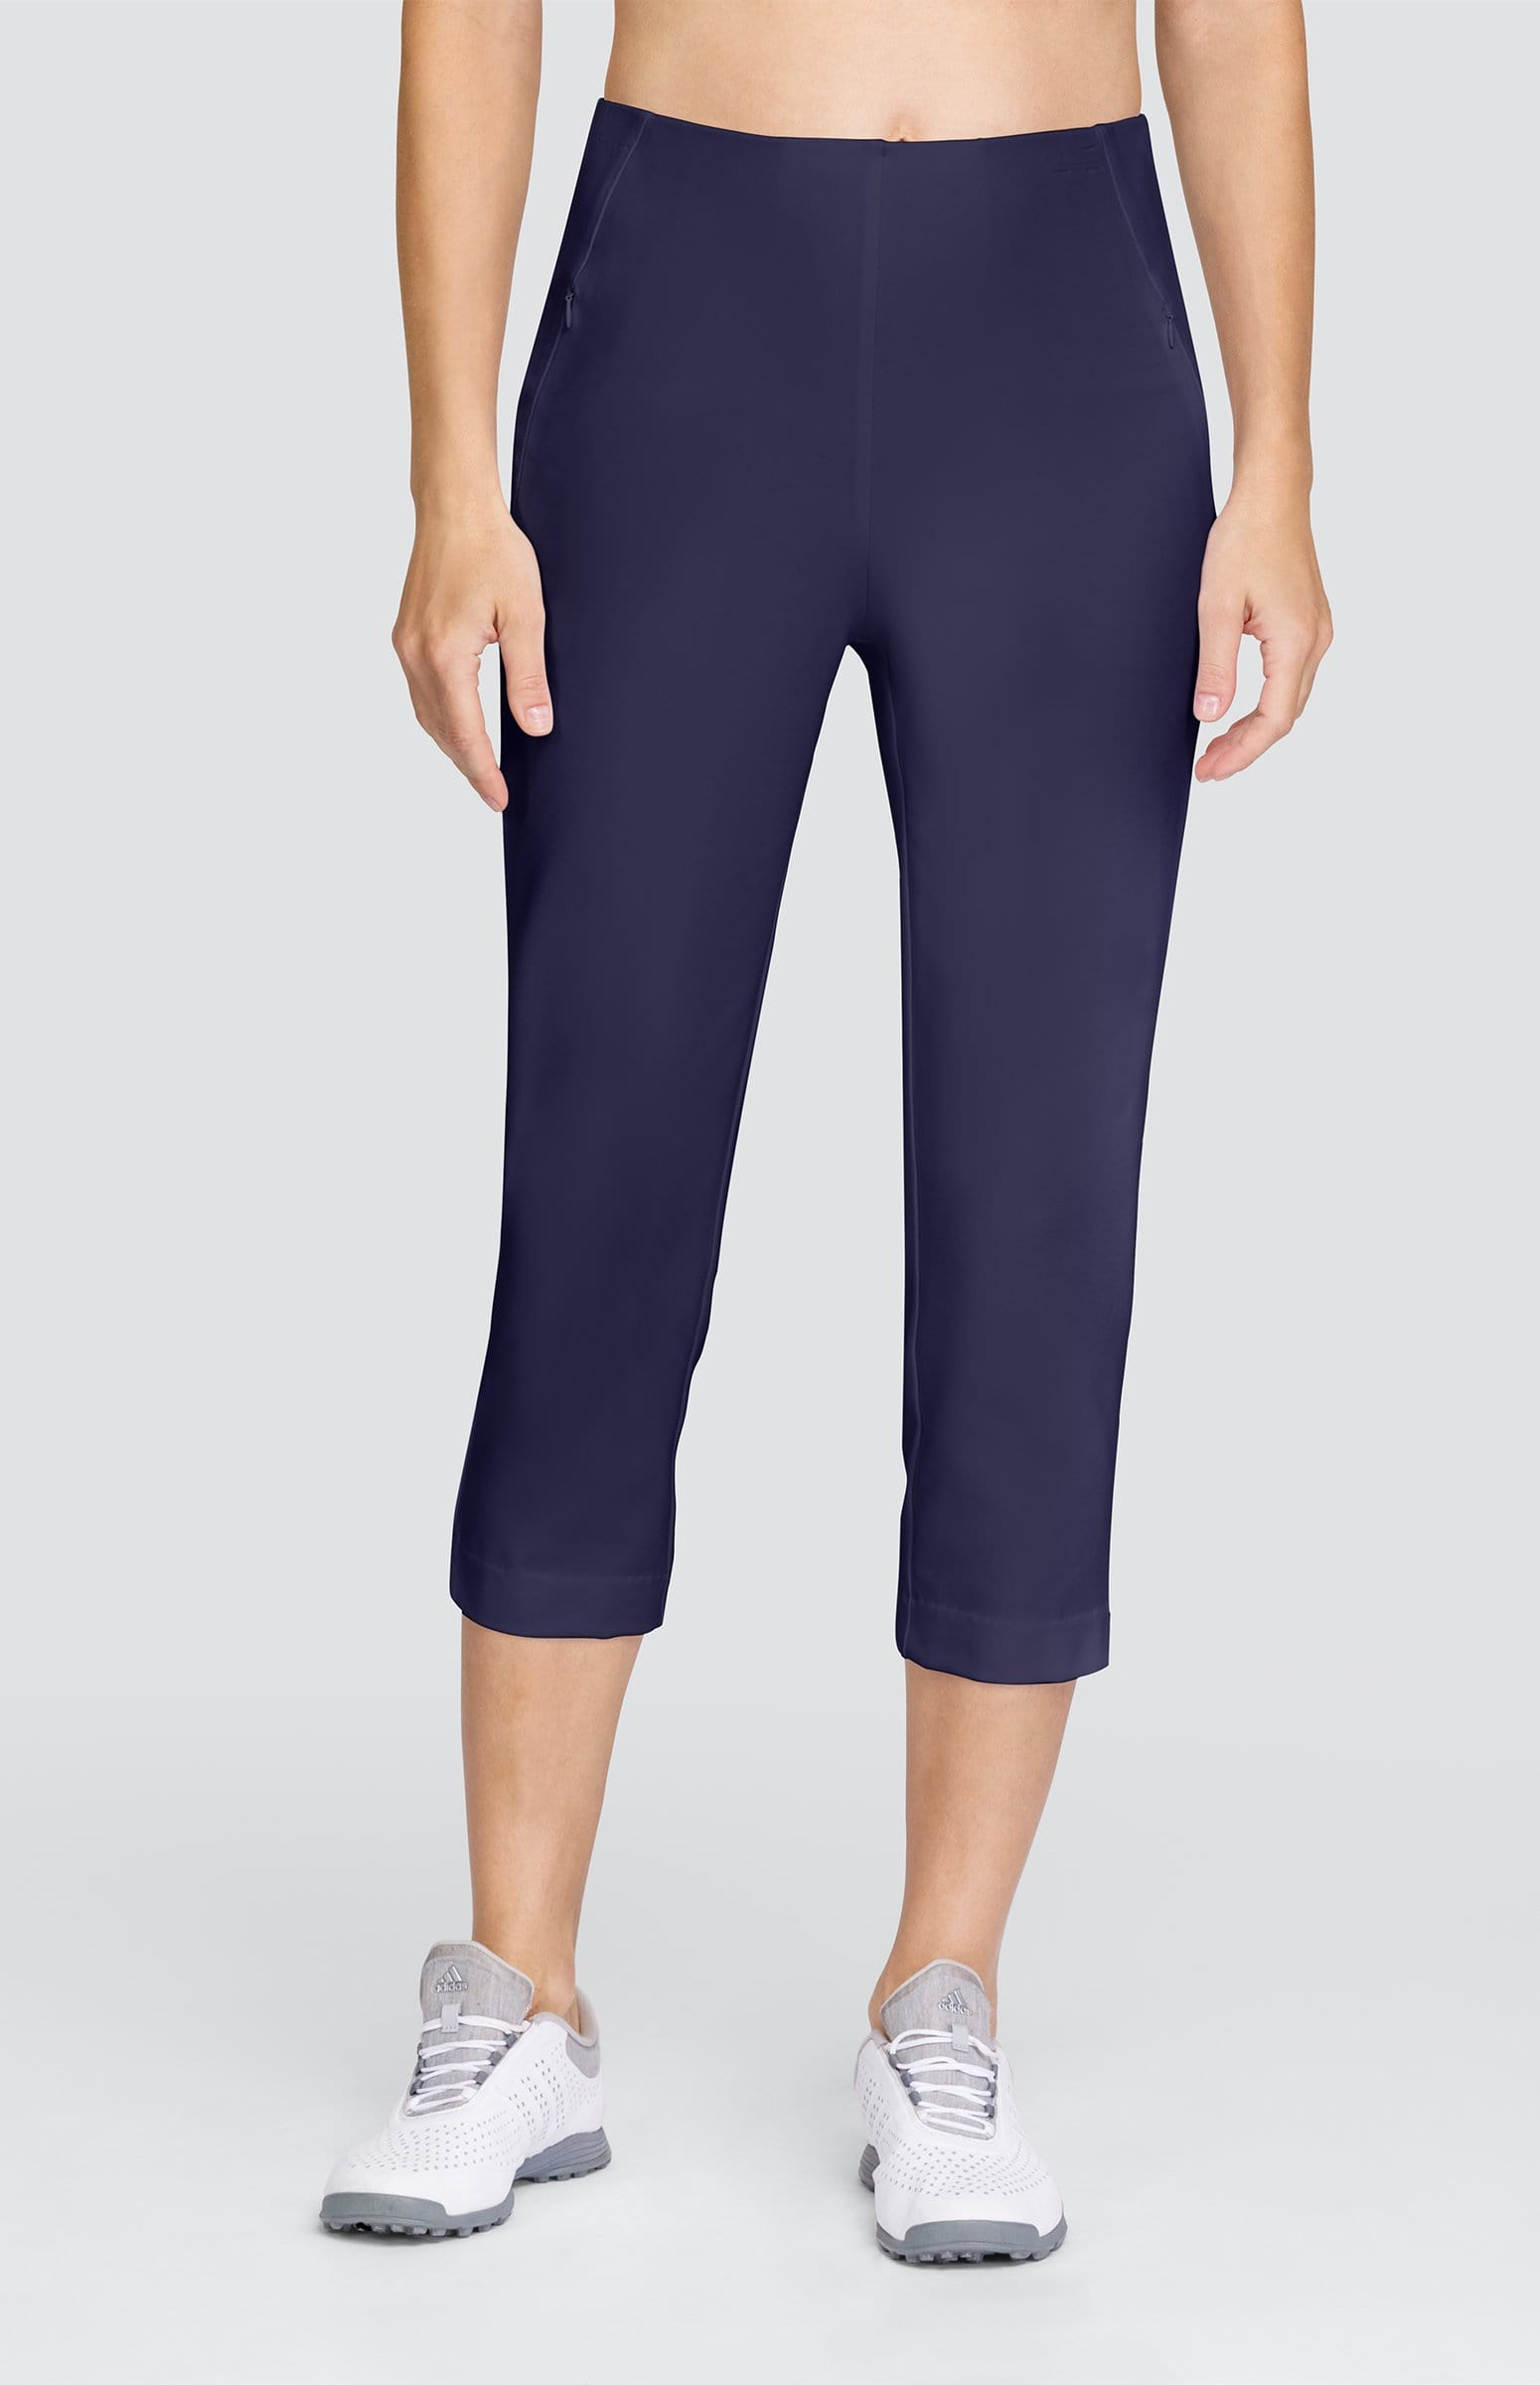 Allure Capri - Night Navy